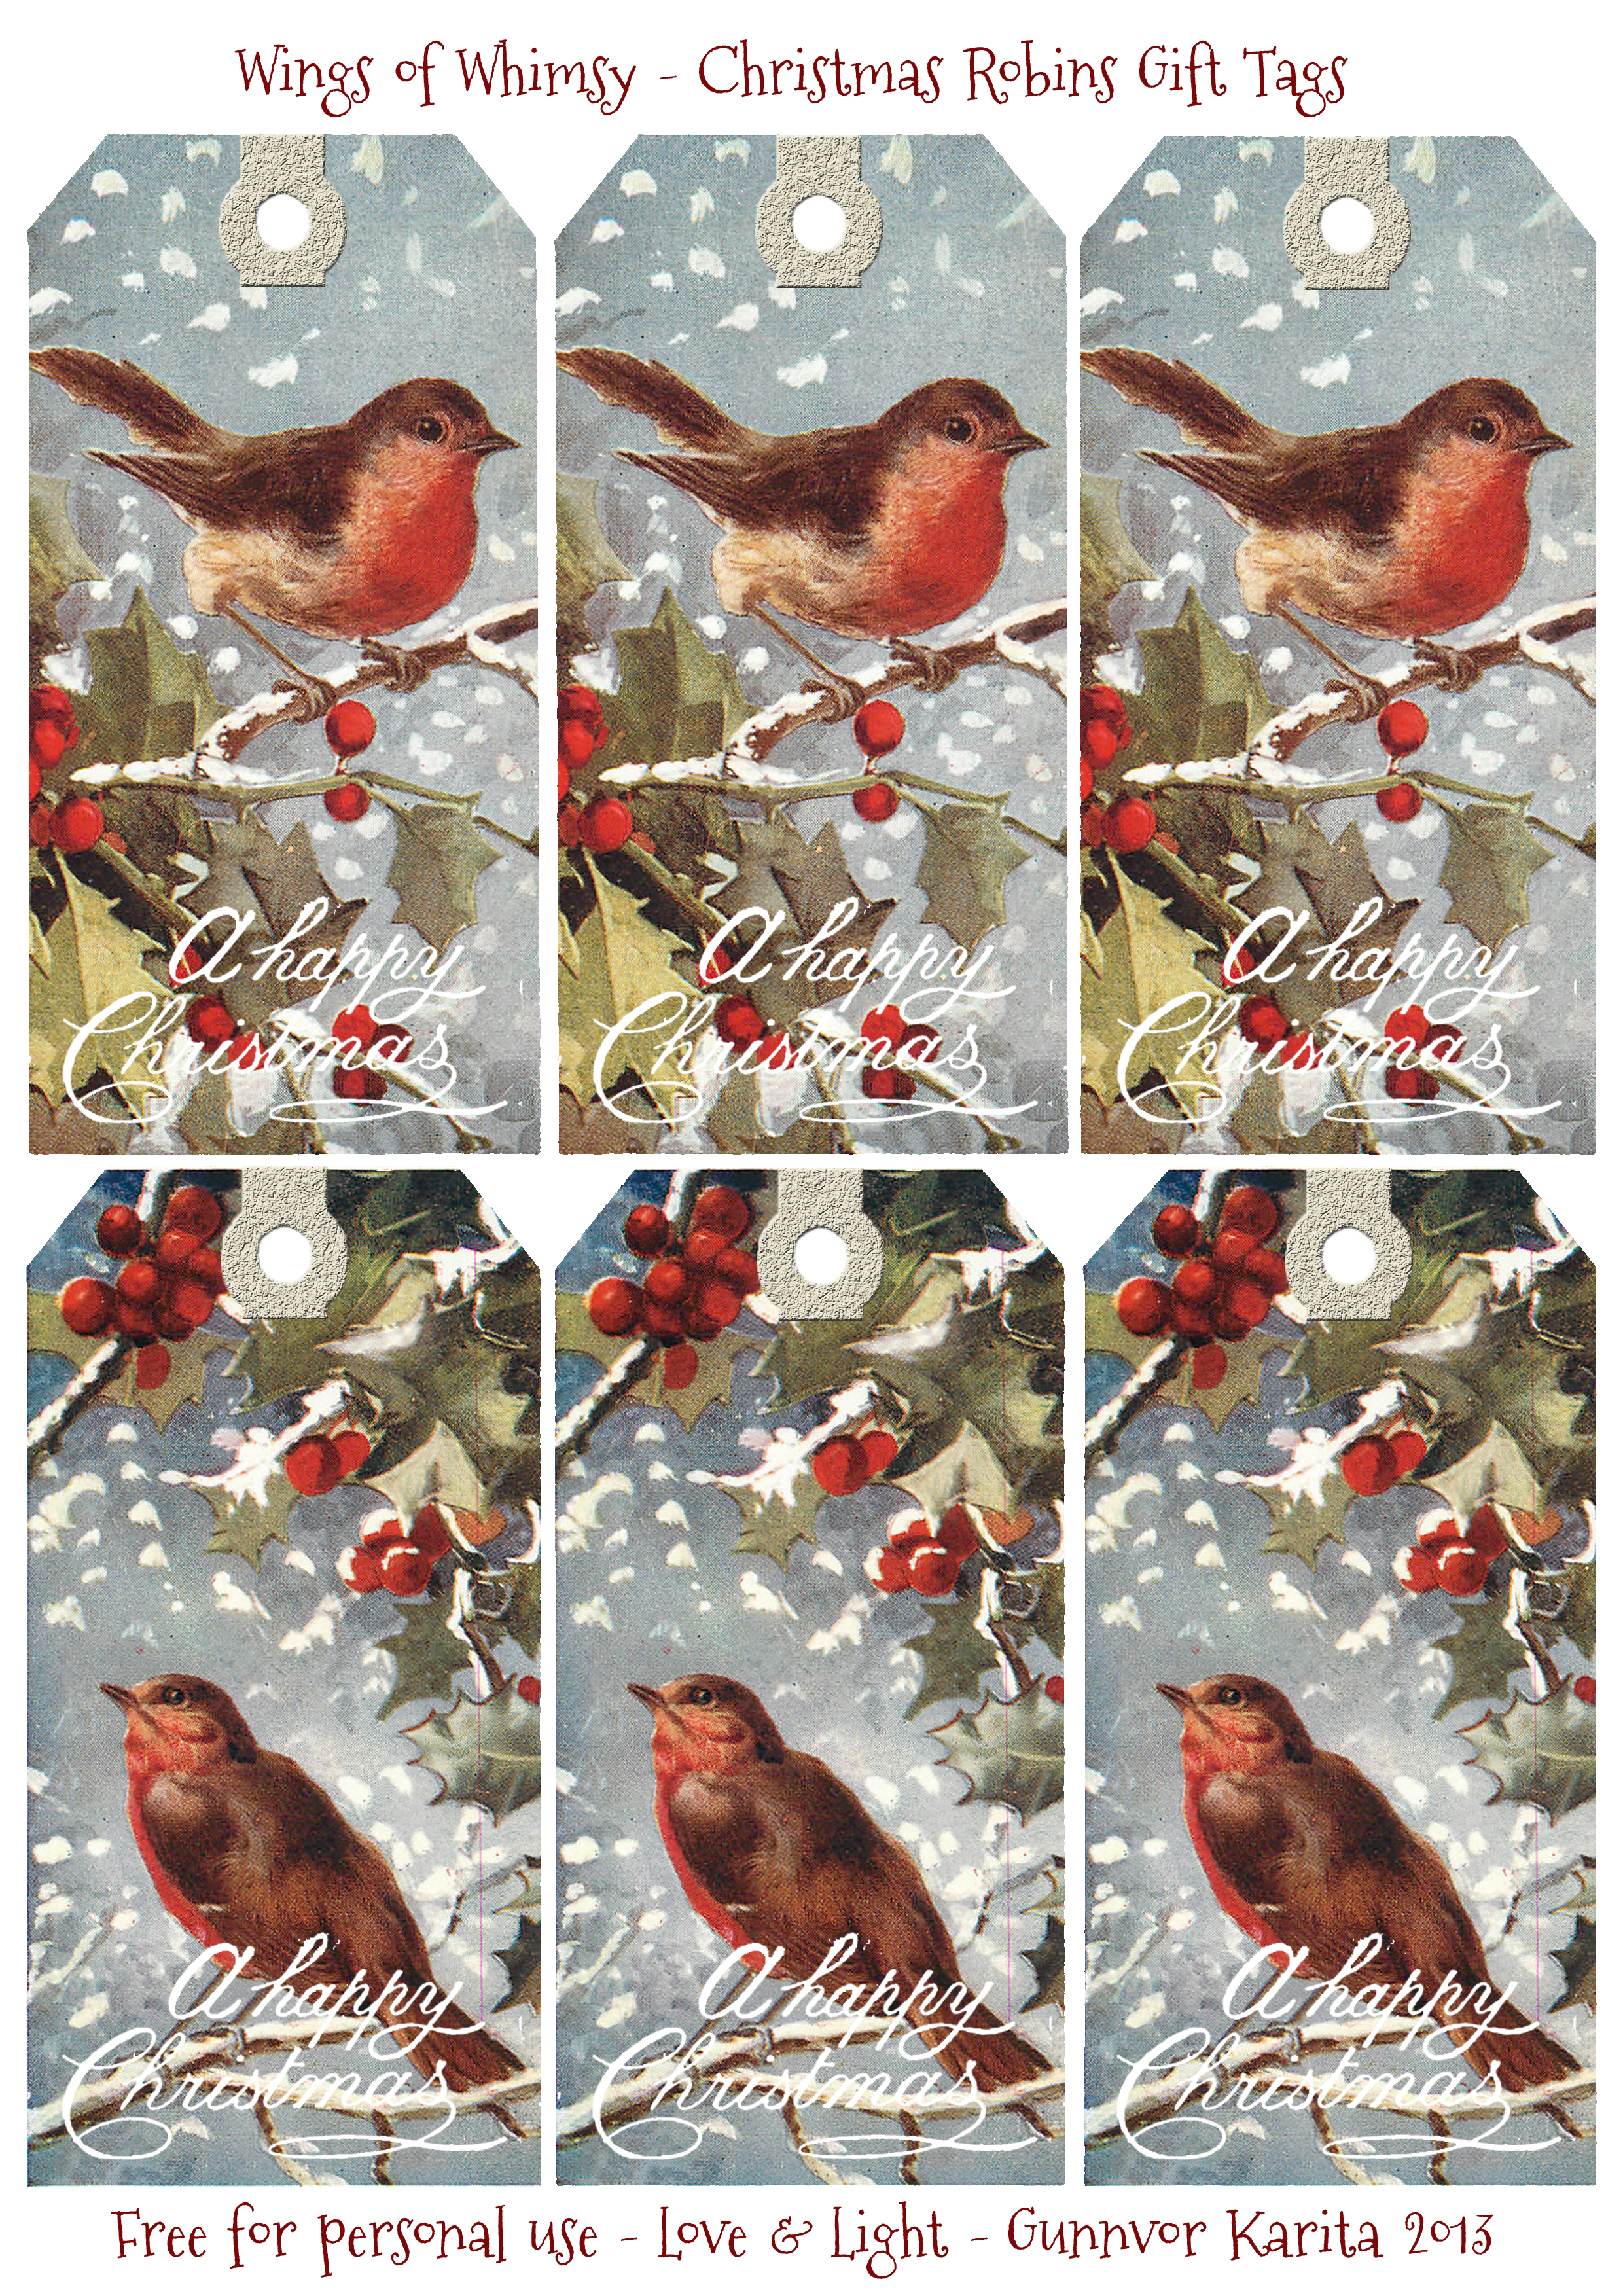 1908 christmas robins free printable gift tags wings of whimsy the quality of the print files is very high i printed the individual tags as large as possible on a4 sized paper and the images still looks fabulous negle Image collections